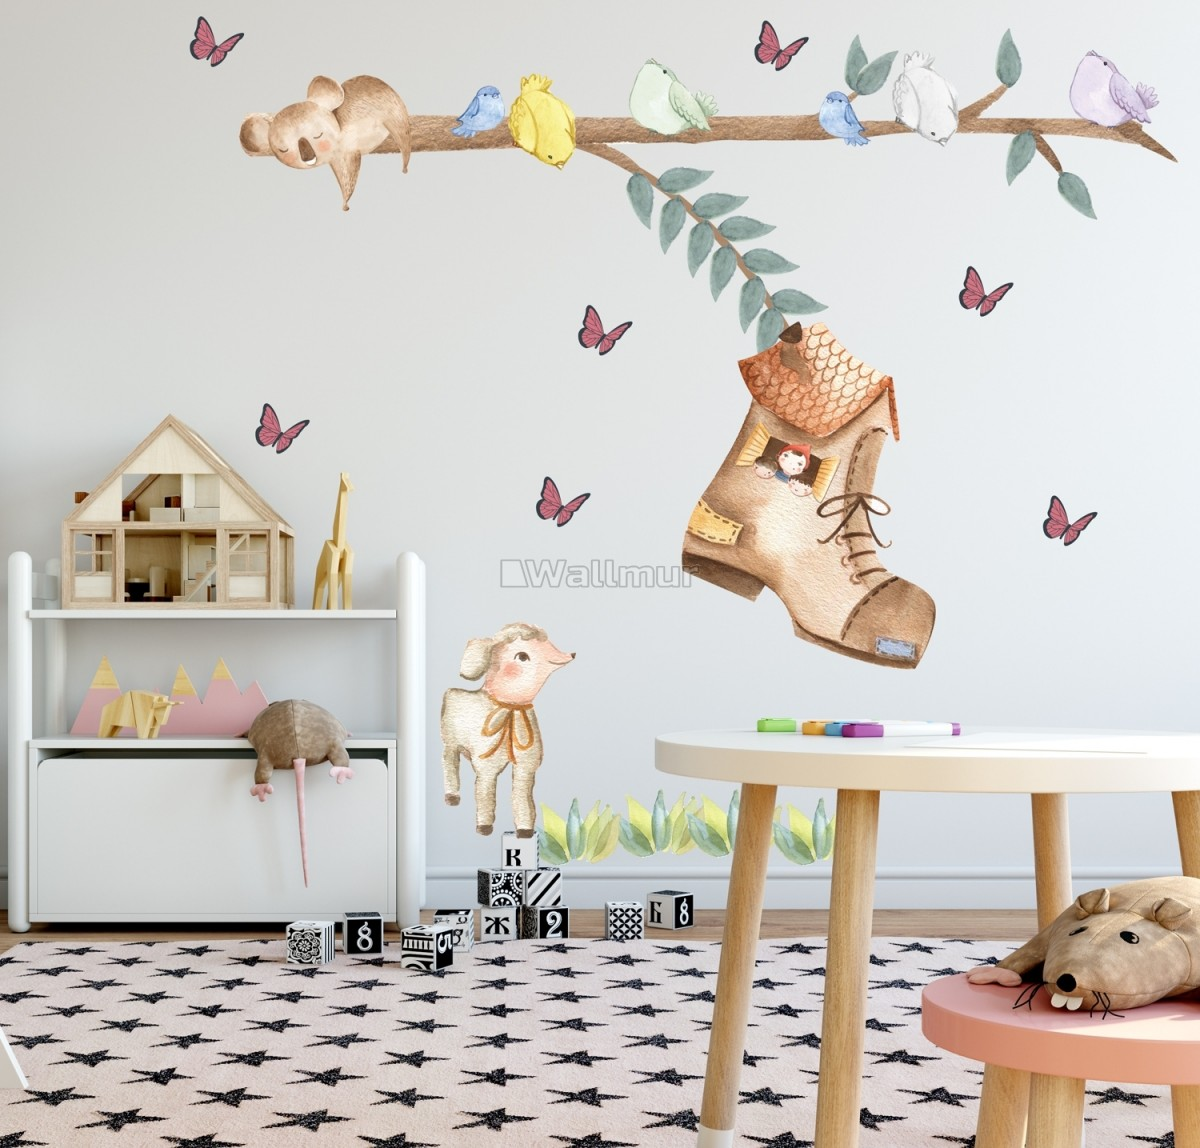 Kids Woodland Shoe home with Coala and Little Birds Wall Decal Sticker